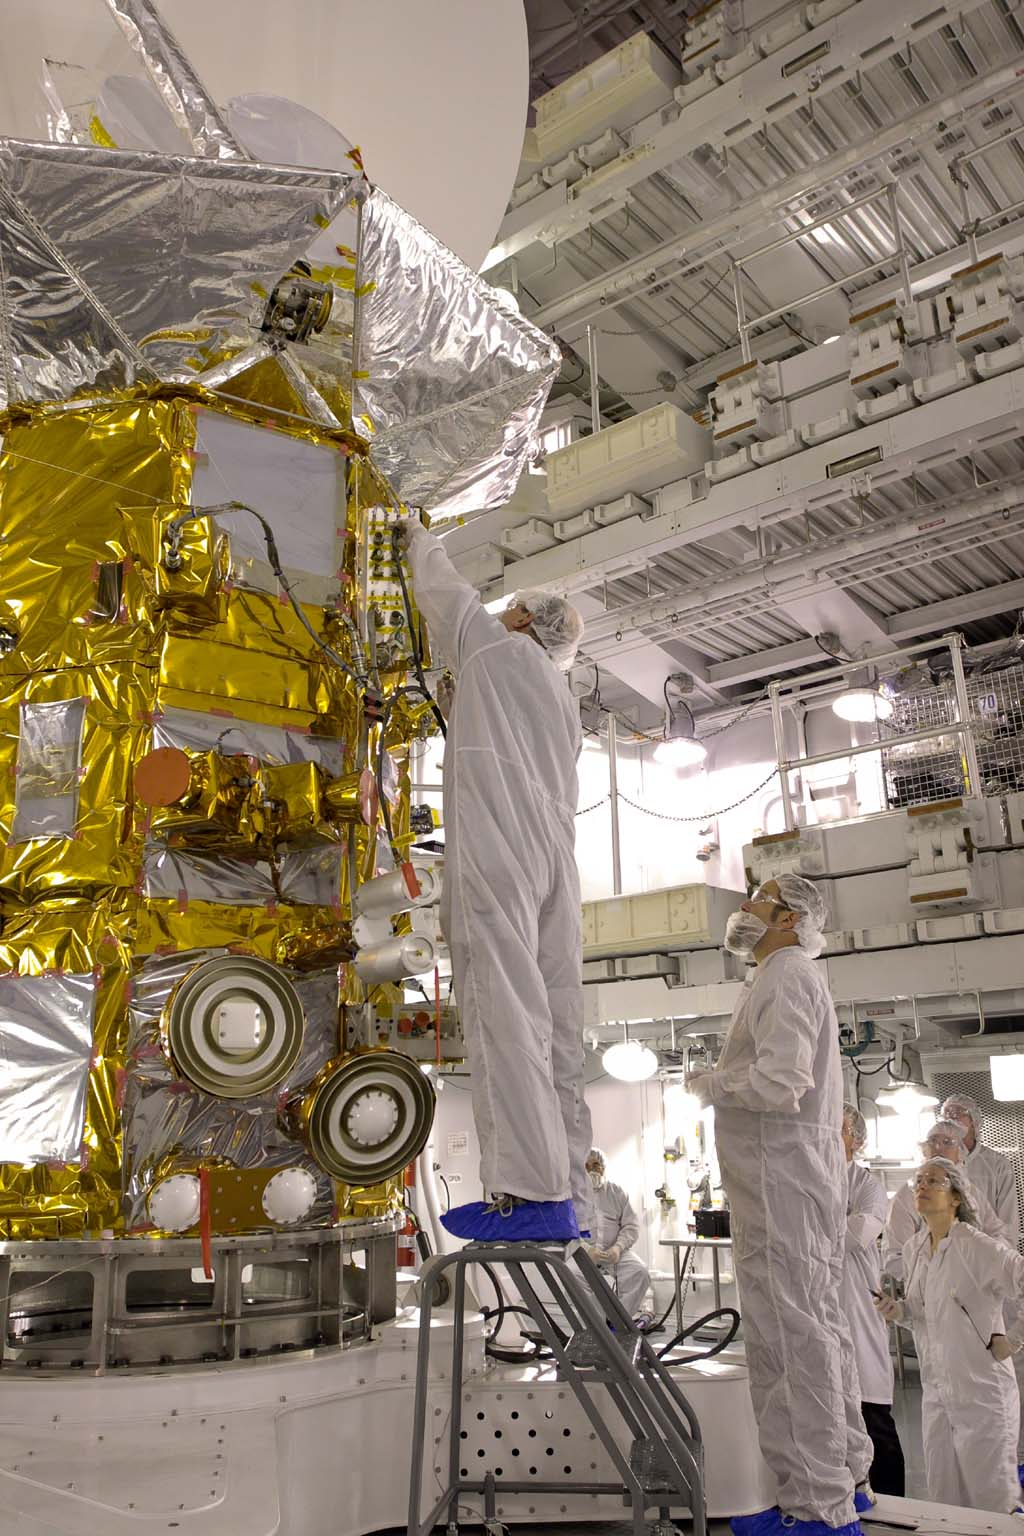 Less than two months before launch, team members conduct their final checks of NASA's Aquarius instrument at Vandenberg Air Force Base, Calif. Subsequent final instrument tests will be conducted on the launch pad.